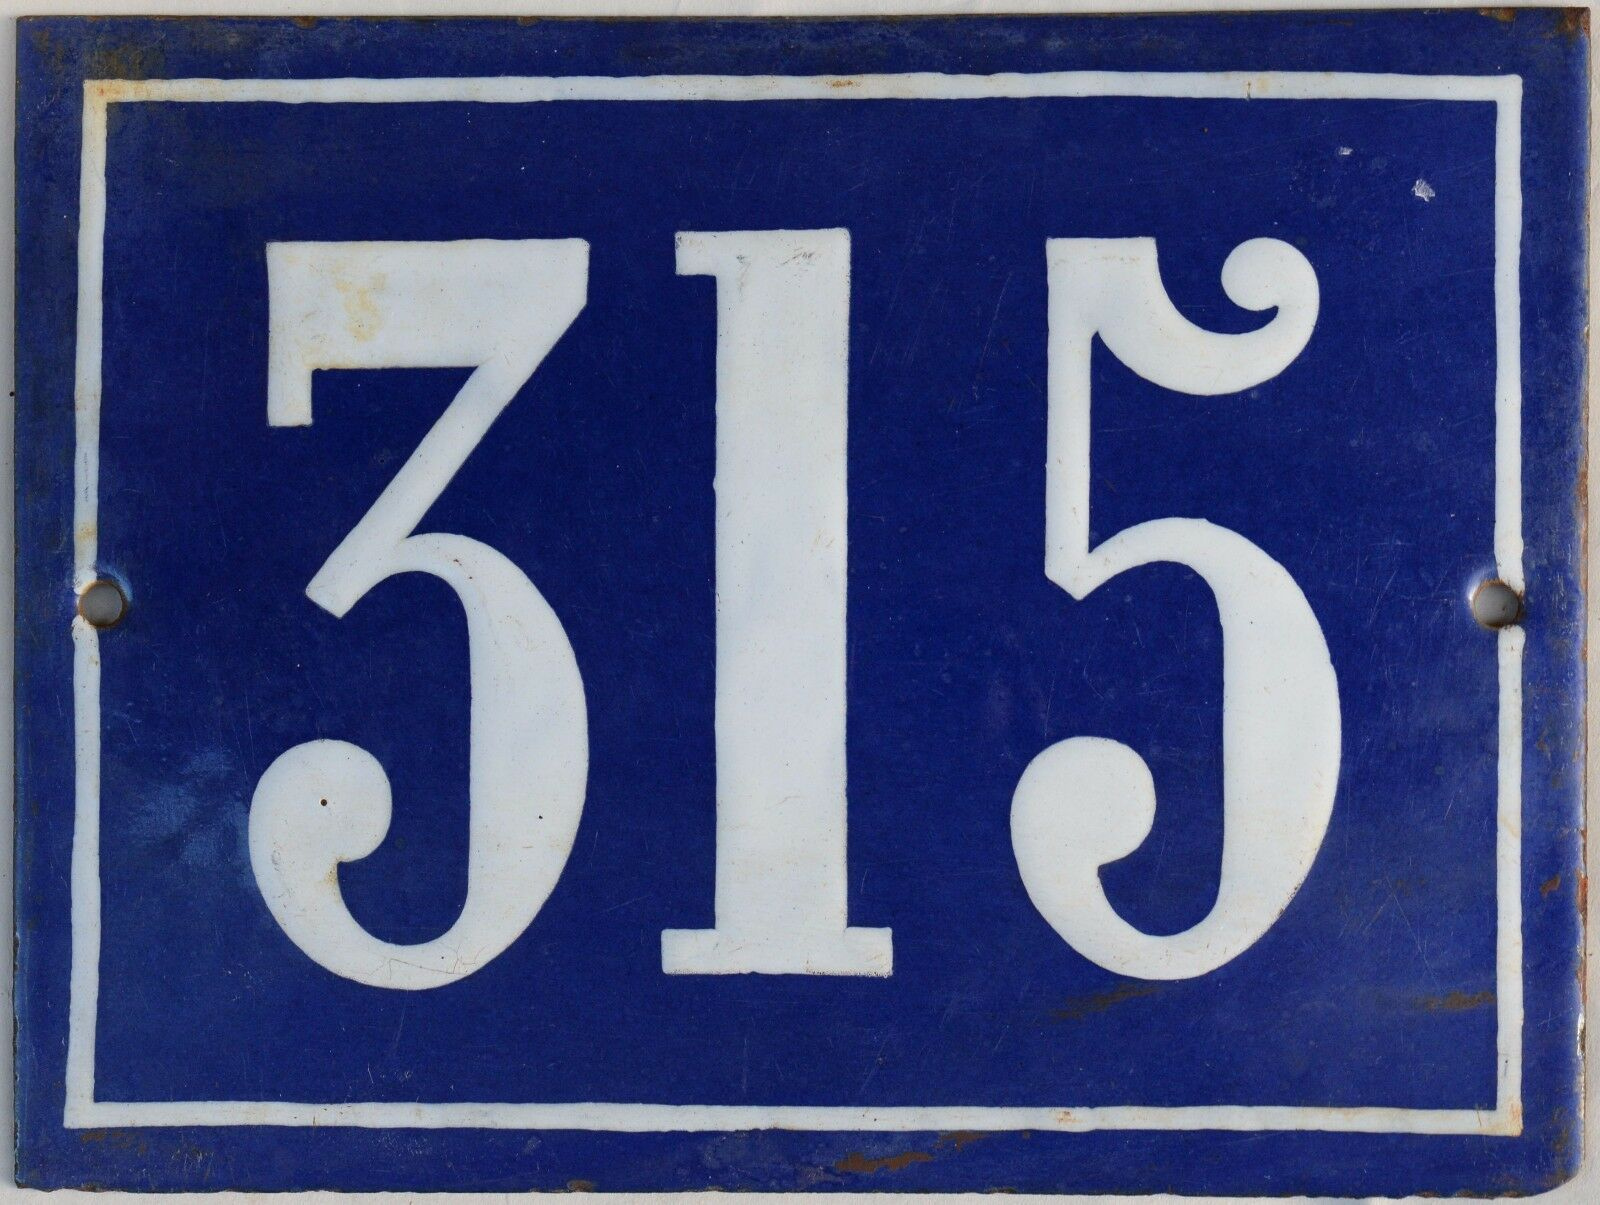 Large old blue French house number 315 door gate plate plaque enamel steel sign